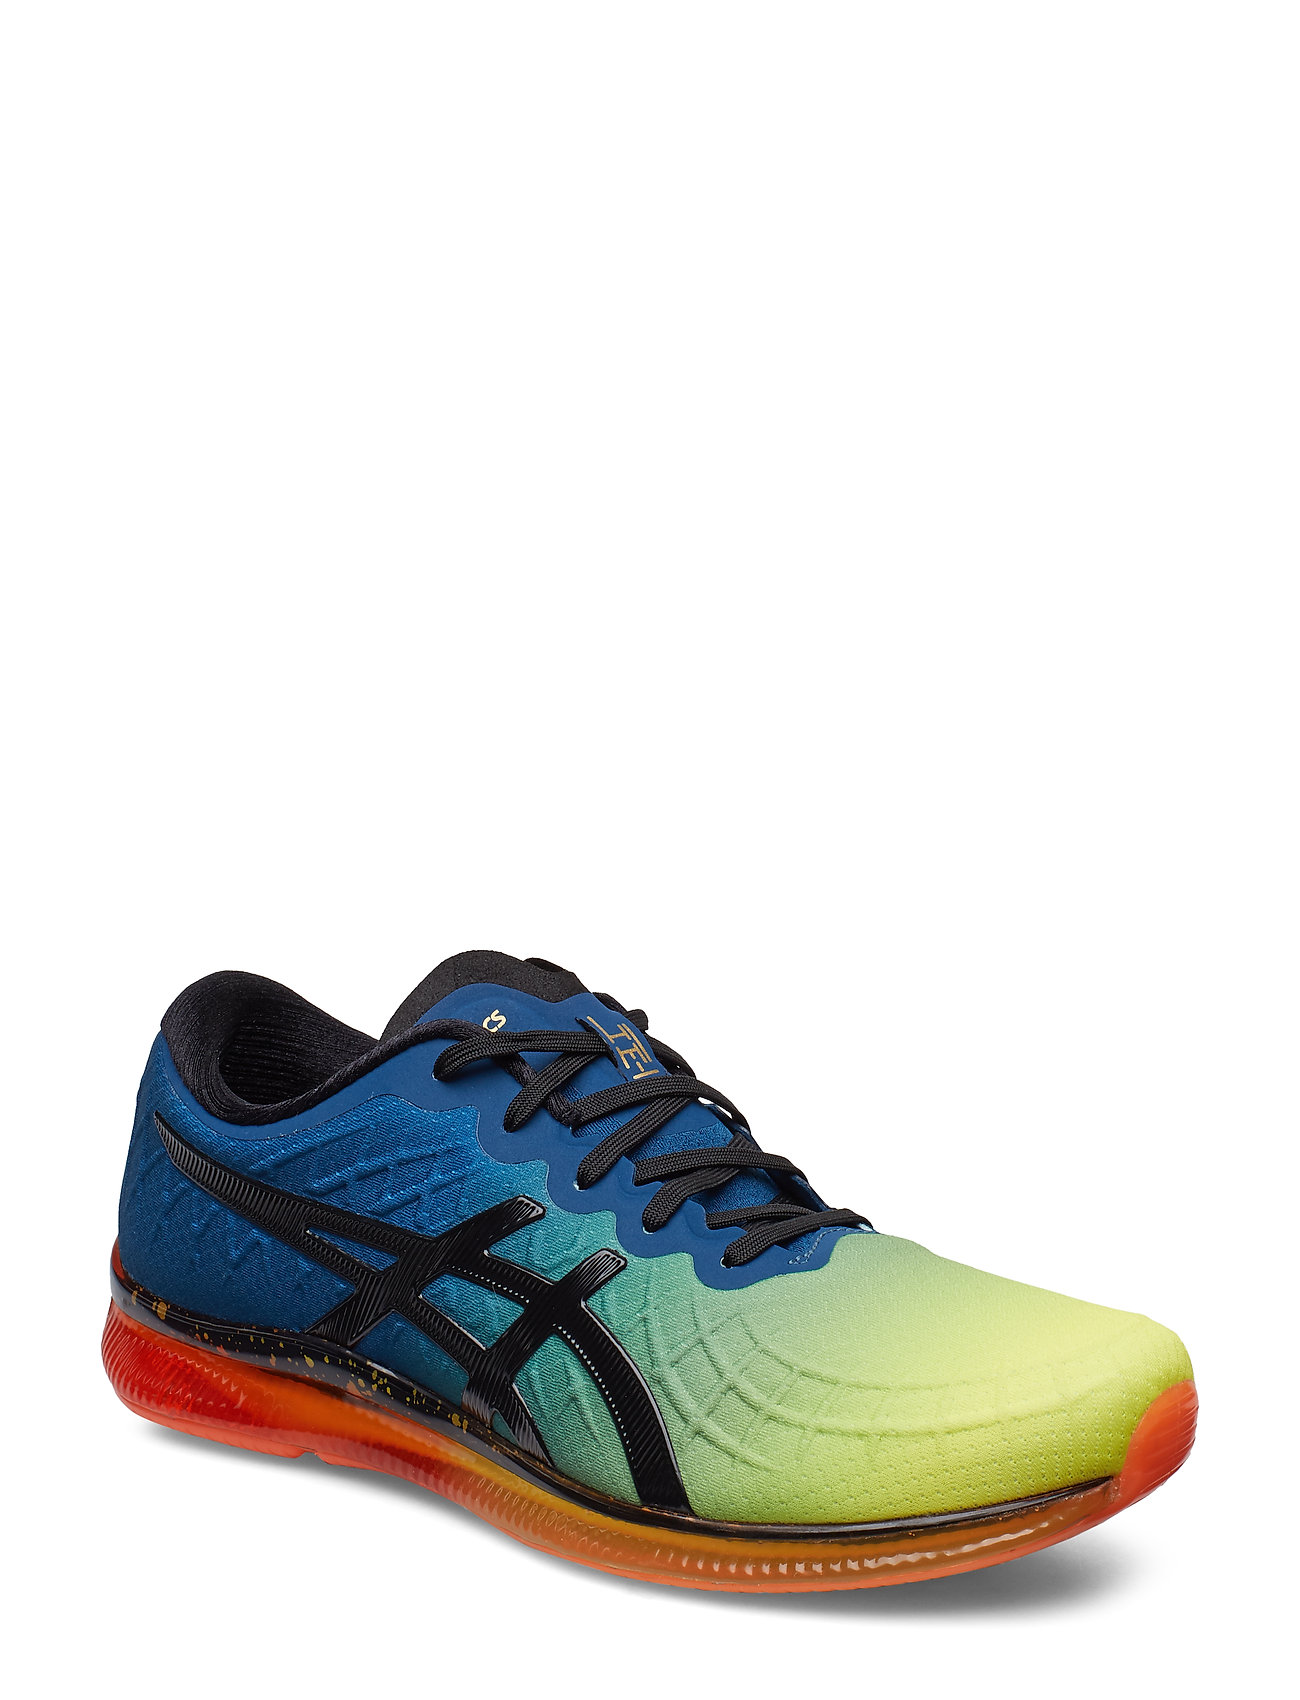 ASICS Gel-Quantum Infinity Shoes Sport Shoes Running Shoes Blau ASICS